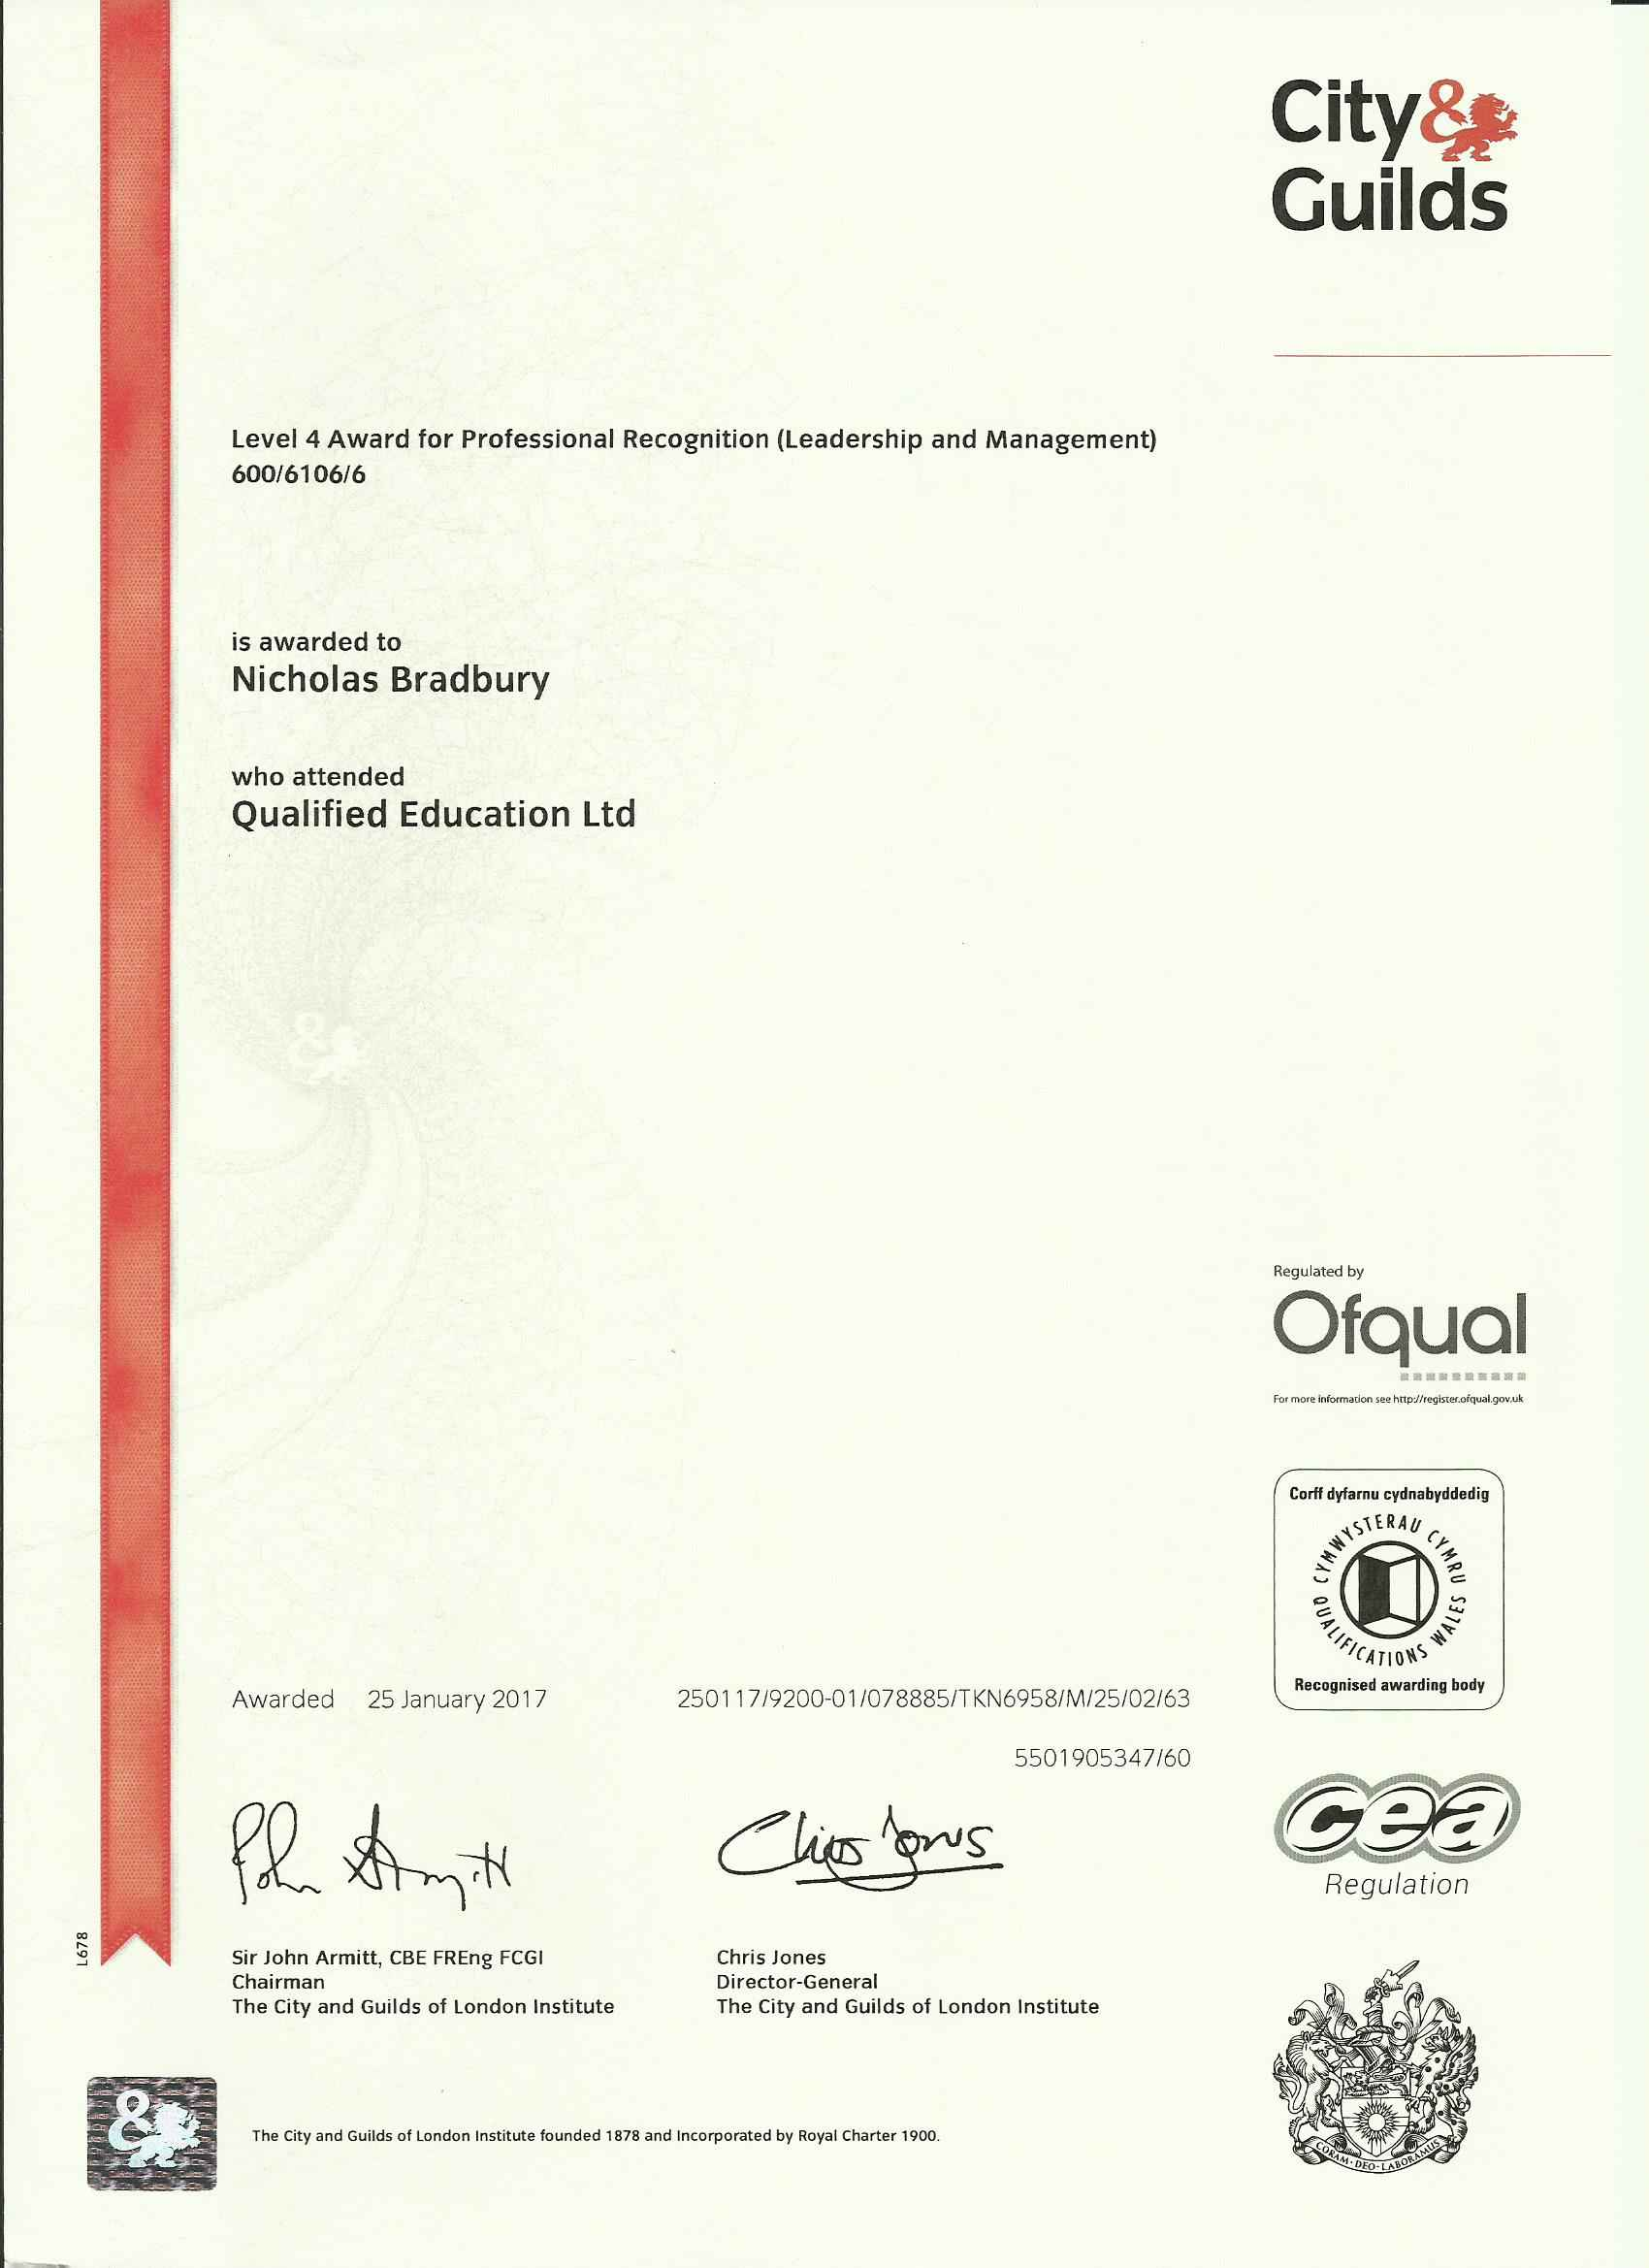 Level 4 Award Professional Recognition Formation